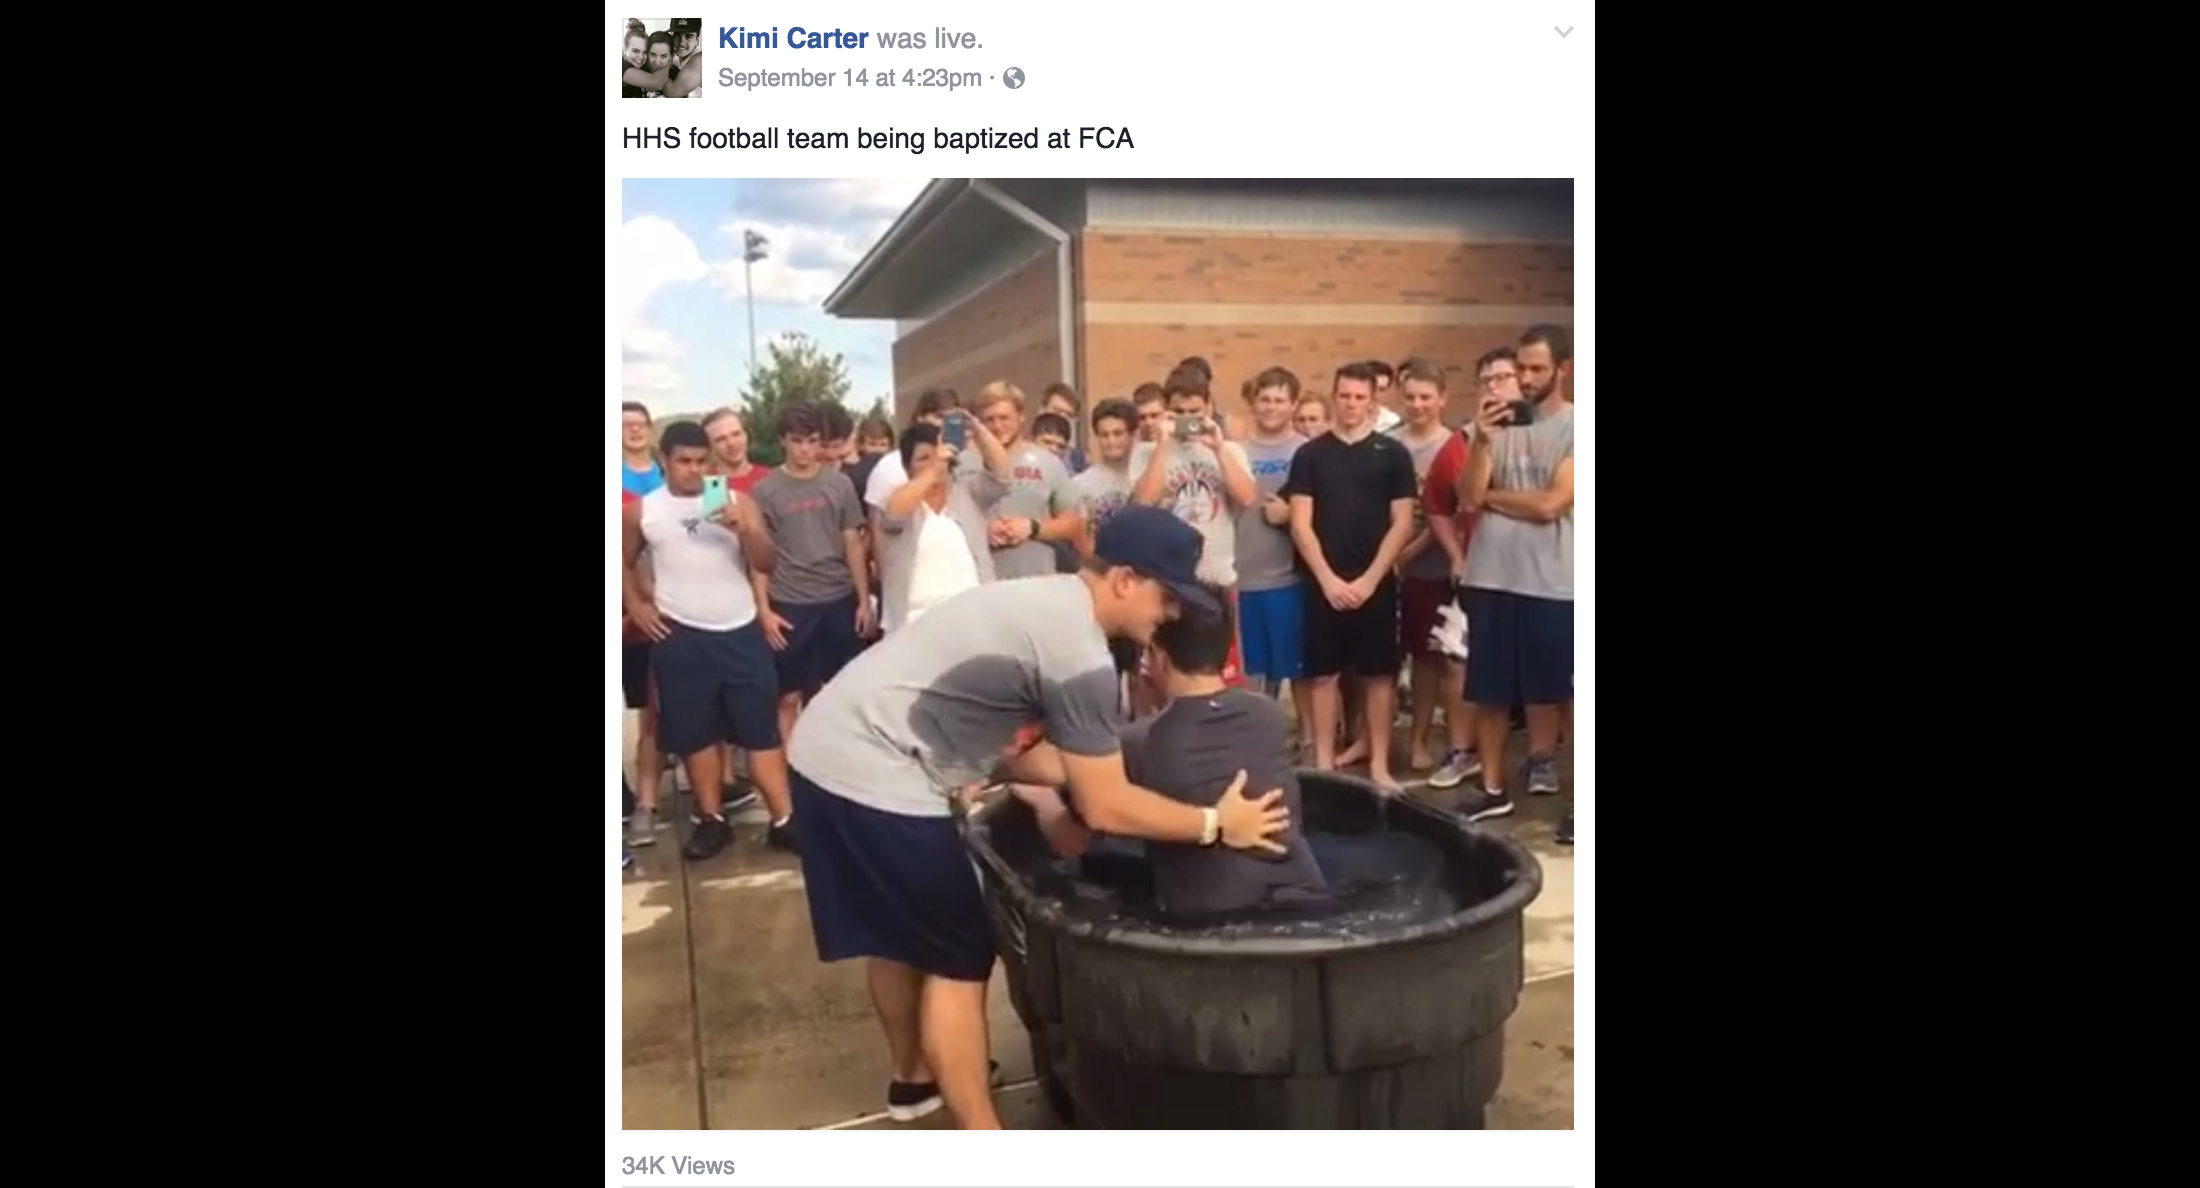 Another Georgia School Conducts Mass Baptism for Football Players With Help of Head Coach